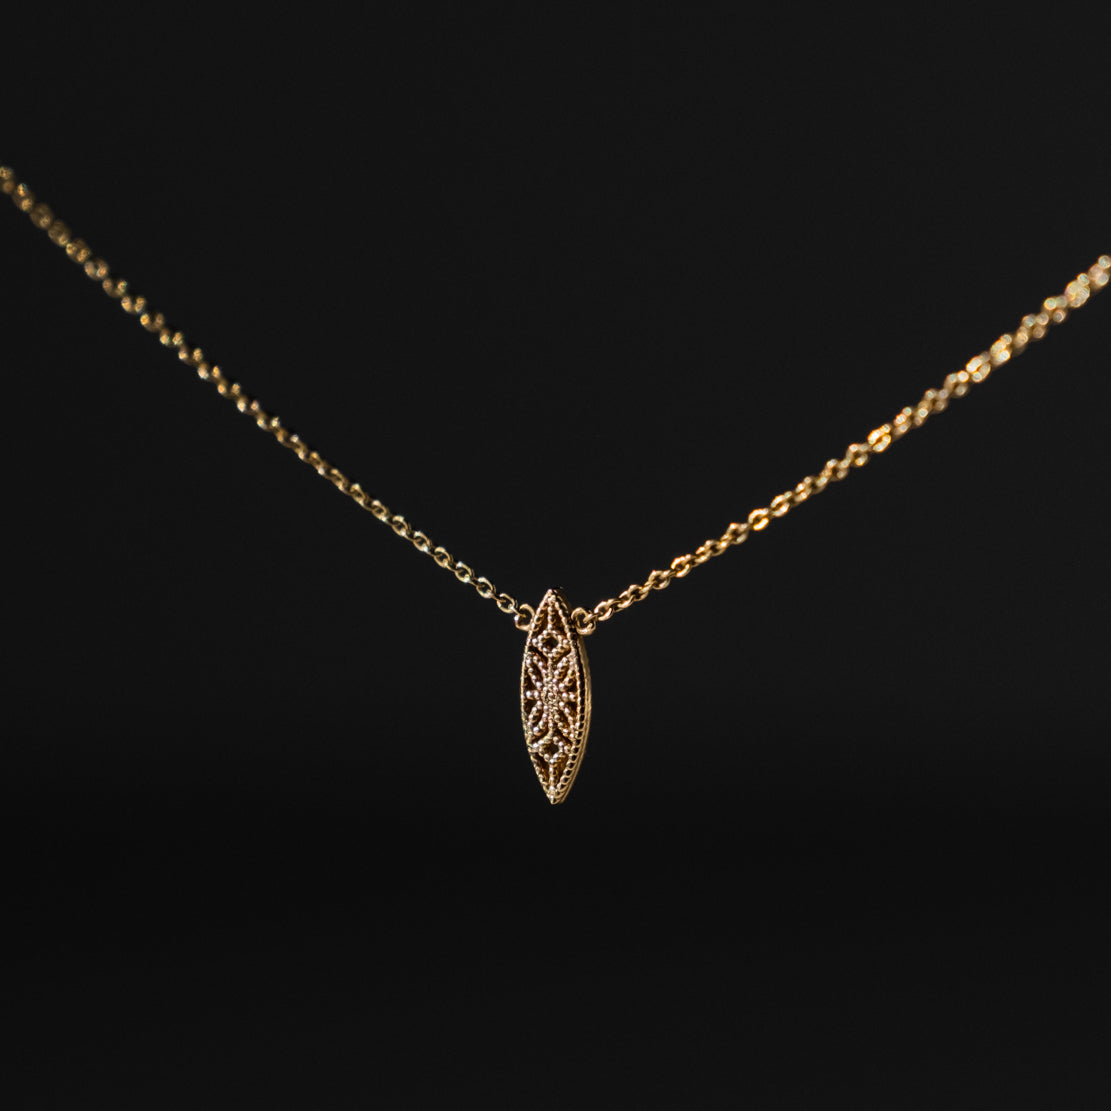 Petite Lace Deco Necklace - I